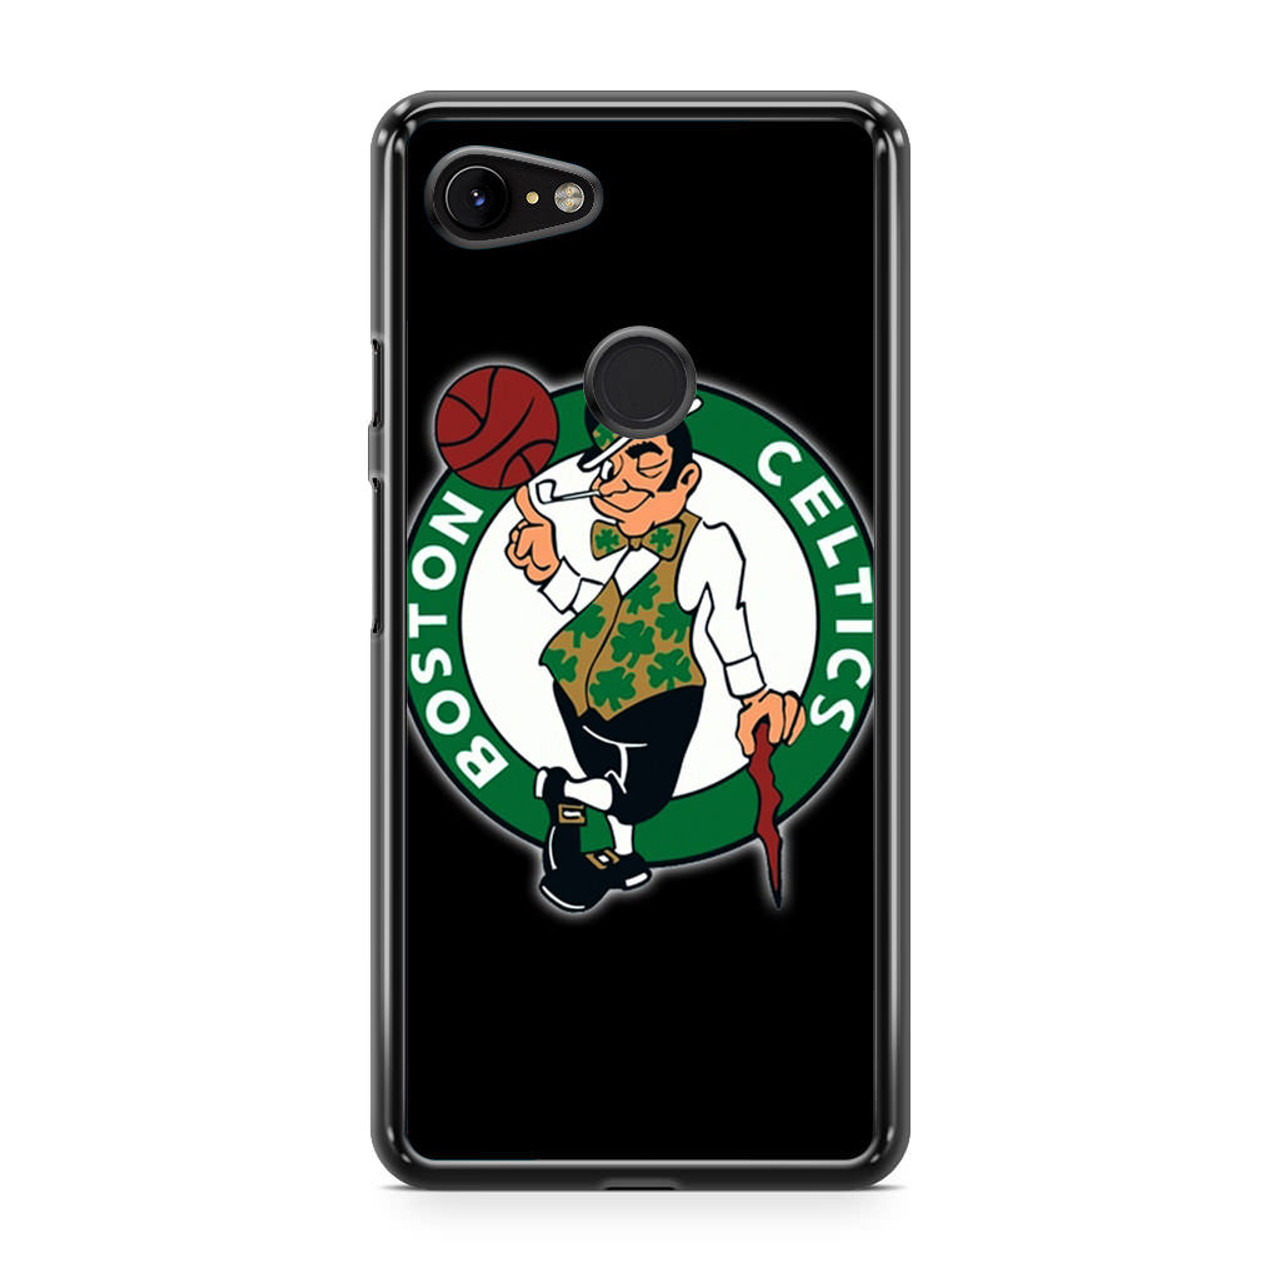 new products bc0e5 815a7 Boston Celtics Logo Nba Google Pixel 3 XL Case